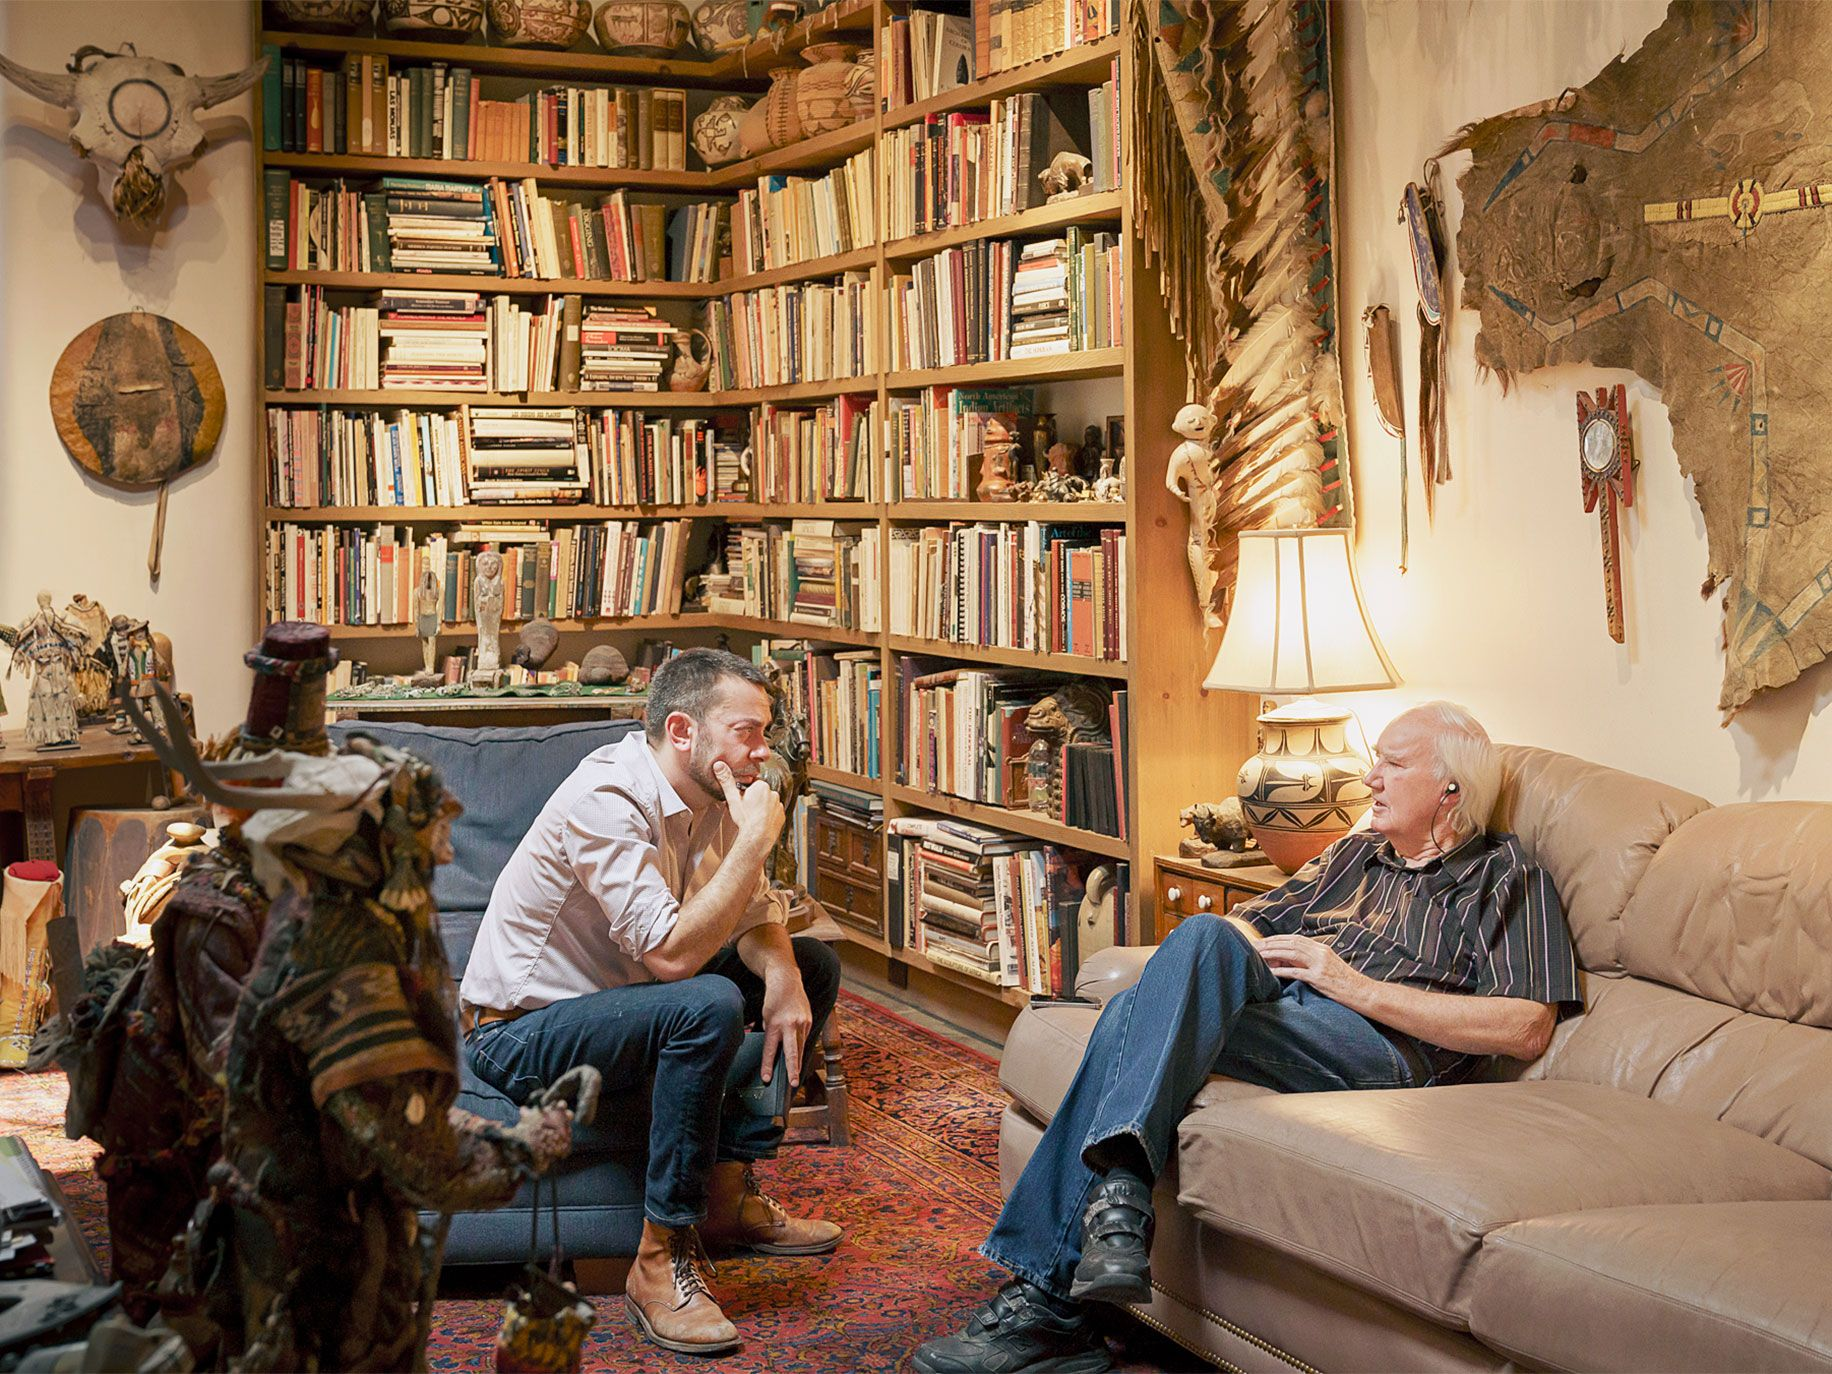 Geoffrey Gray interviewing Forrest Fenn in Fenn's study, which is filled with his collection of Native American artifacts.